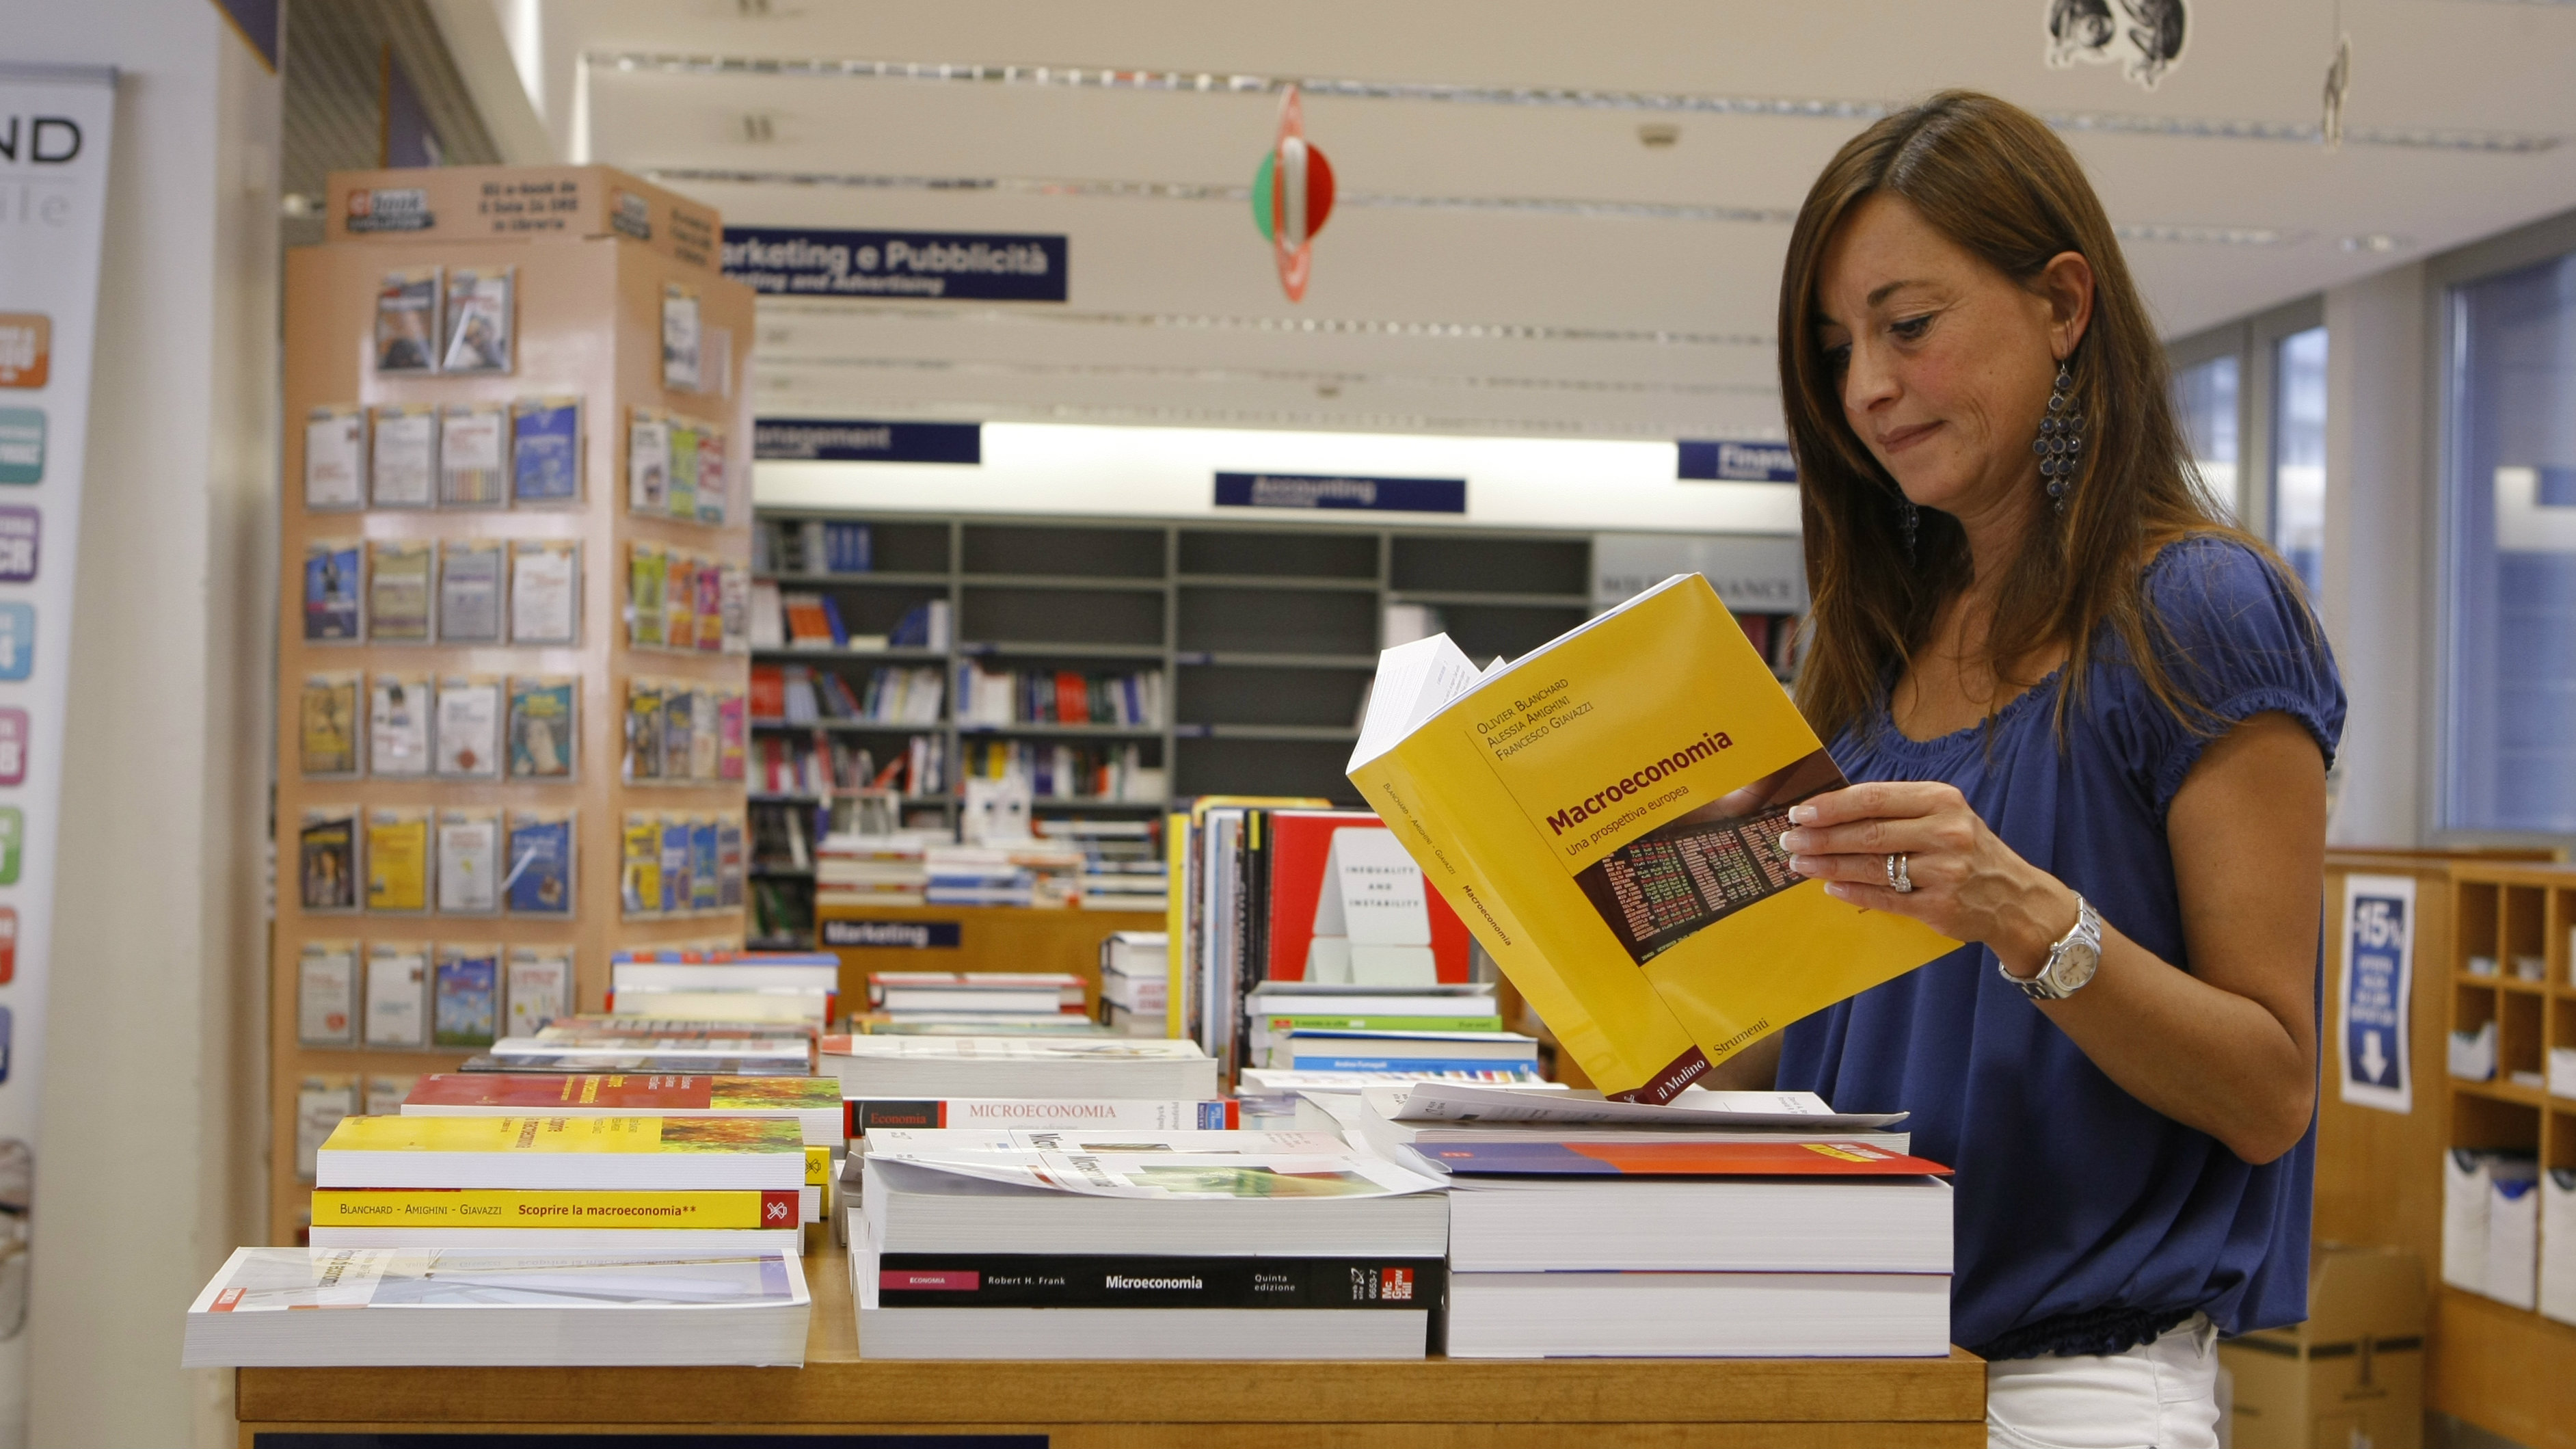 A woman poses with a textbook in the economics section of a book store in